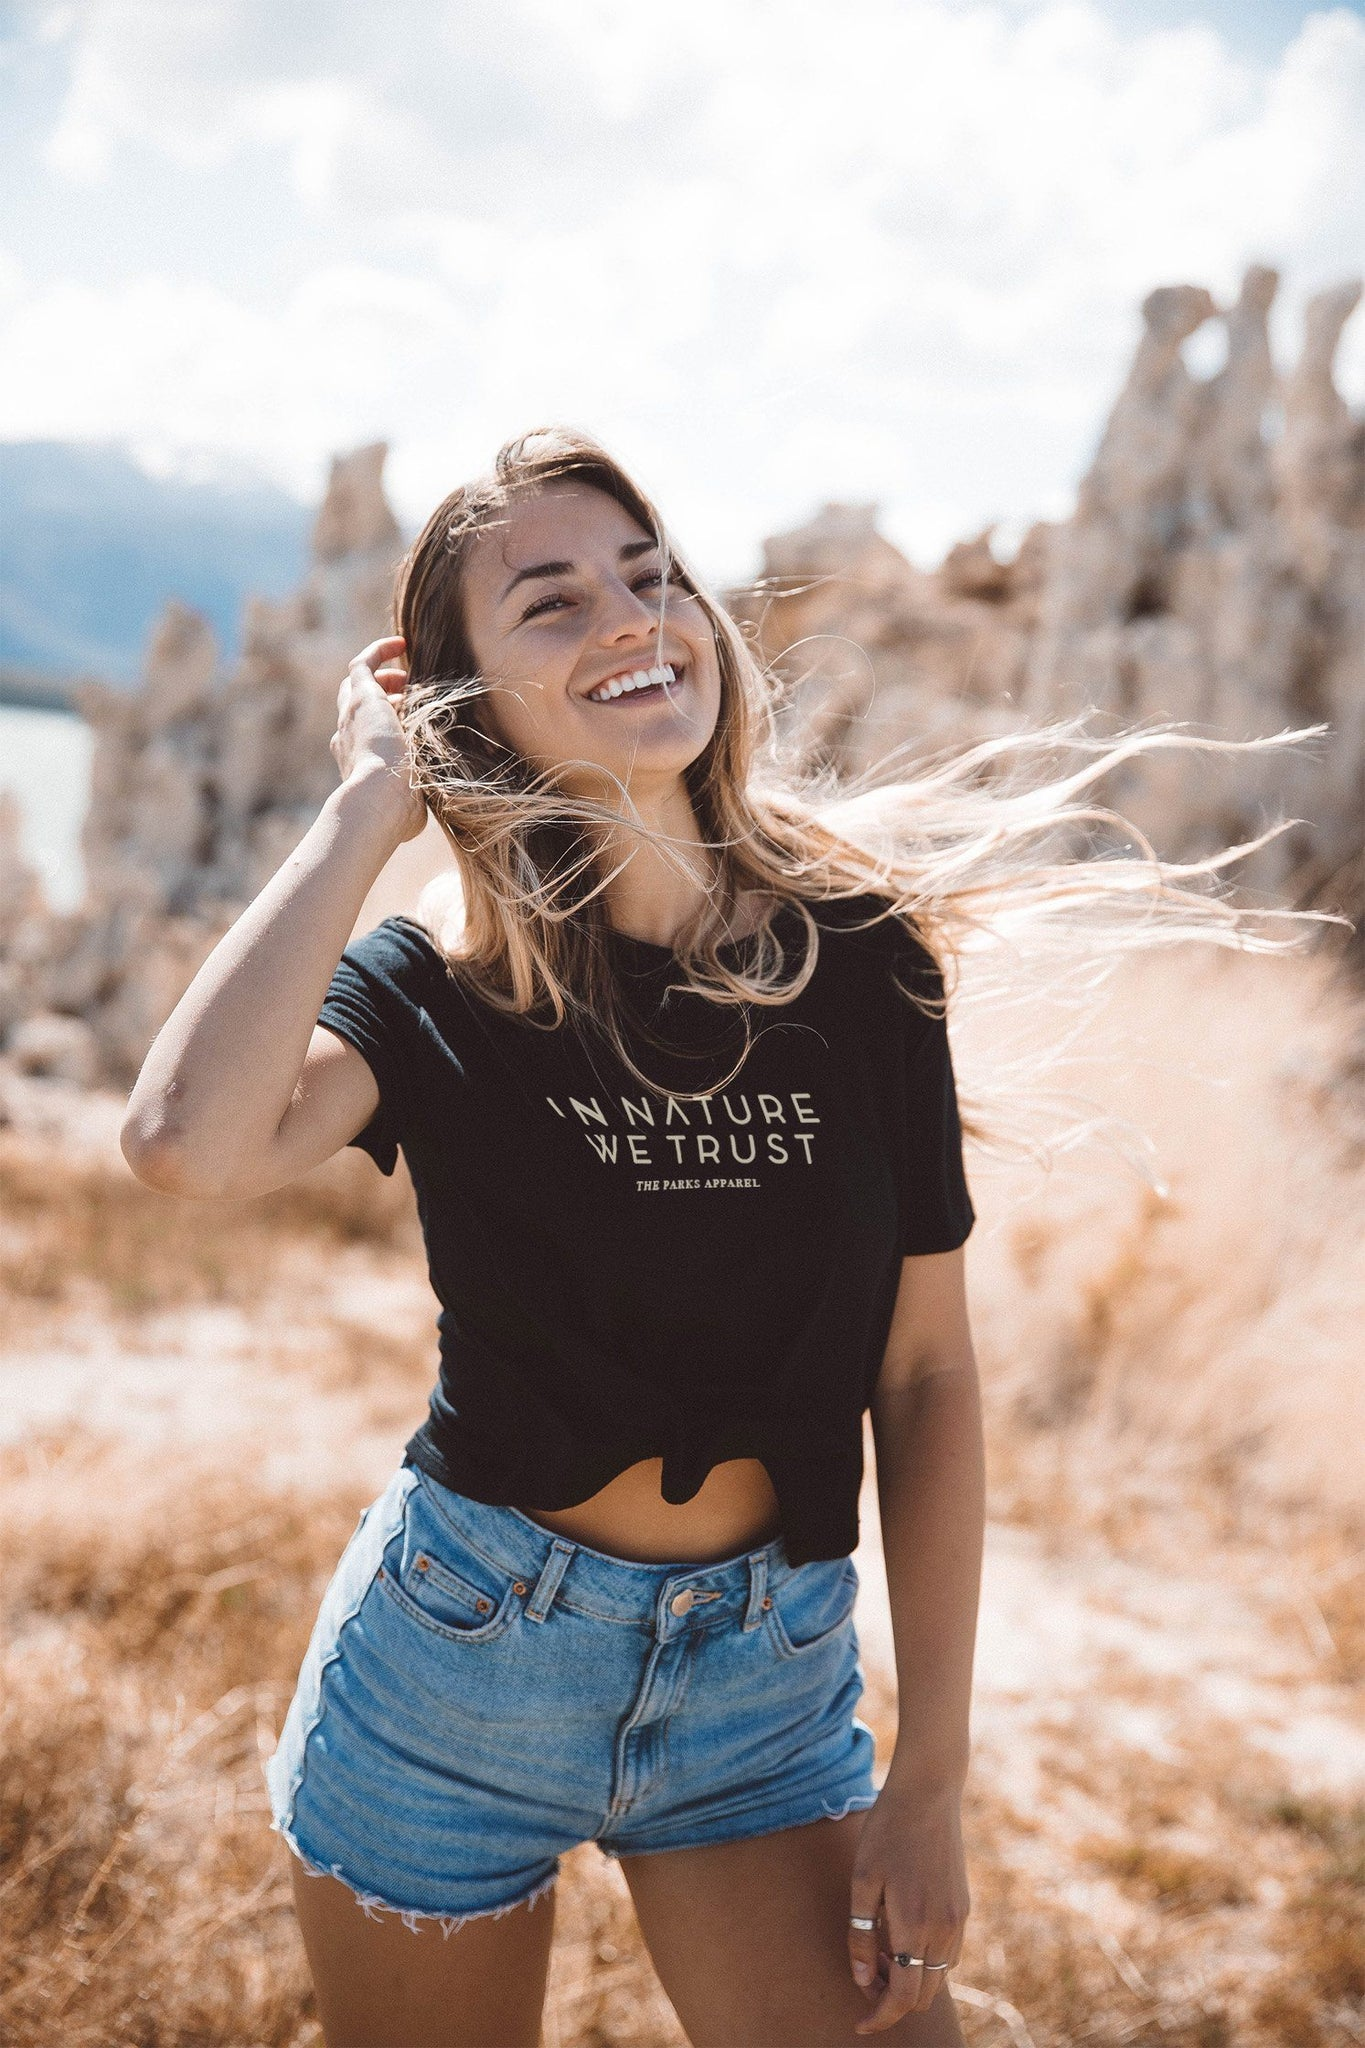 The Parks In Nature We Trust Cropped Tee - The Parks Apparel